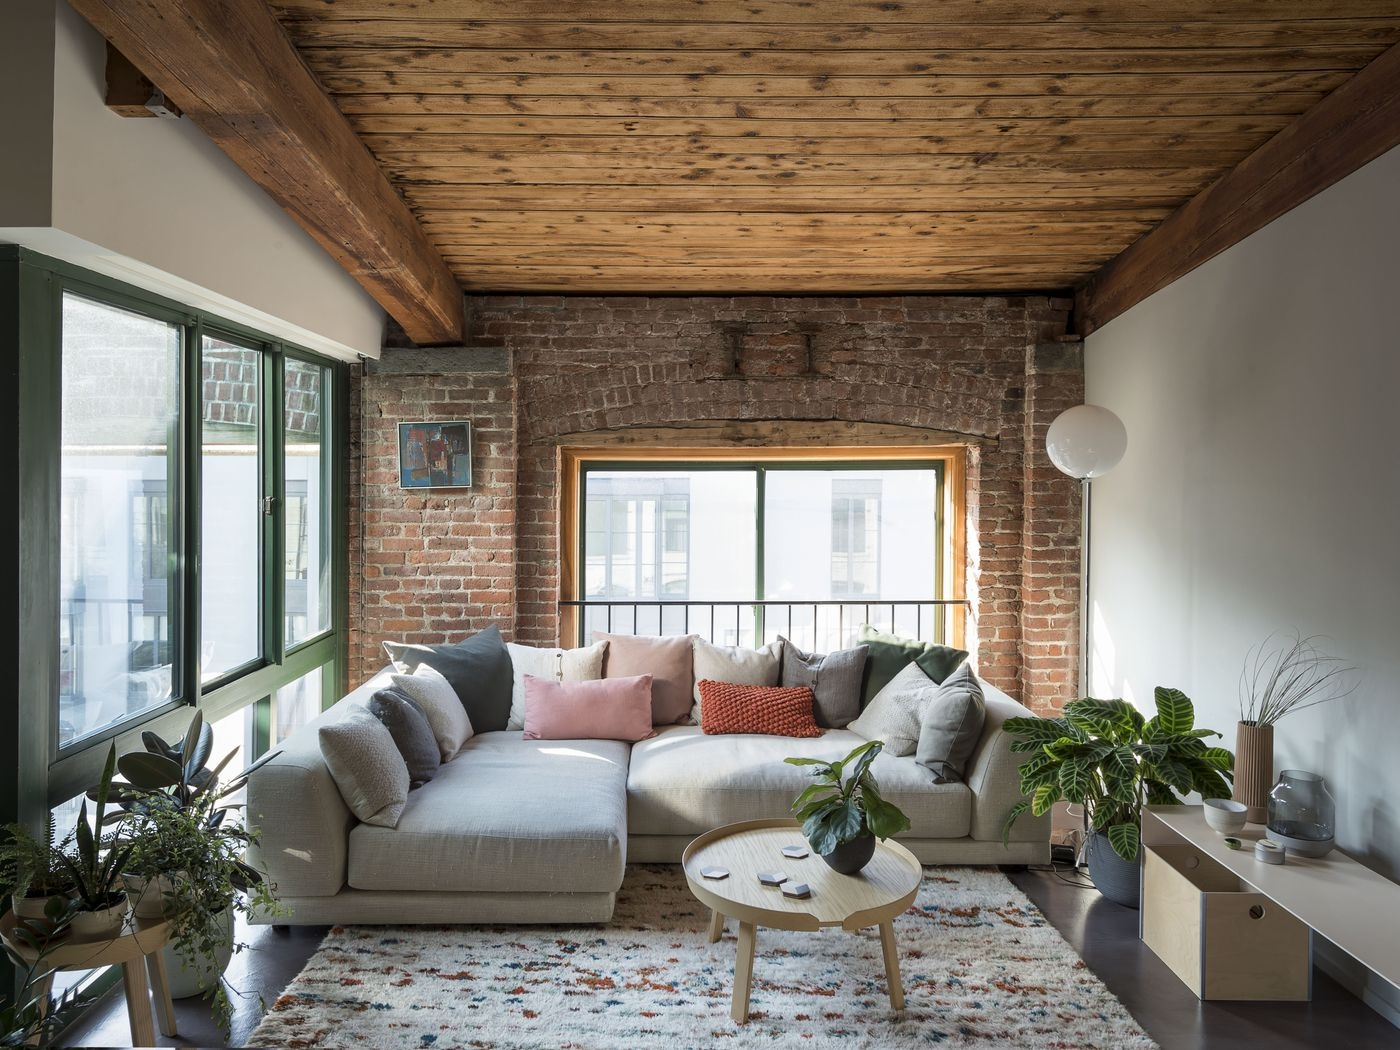 Interior Design The 8 Most Important Principles Curbed | Outside Steps Design For Home | Garden | Second Floor | Low Cost | Main Entrance Step | Railing